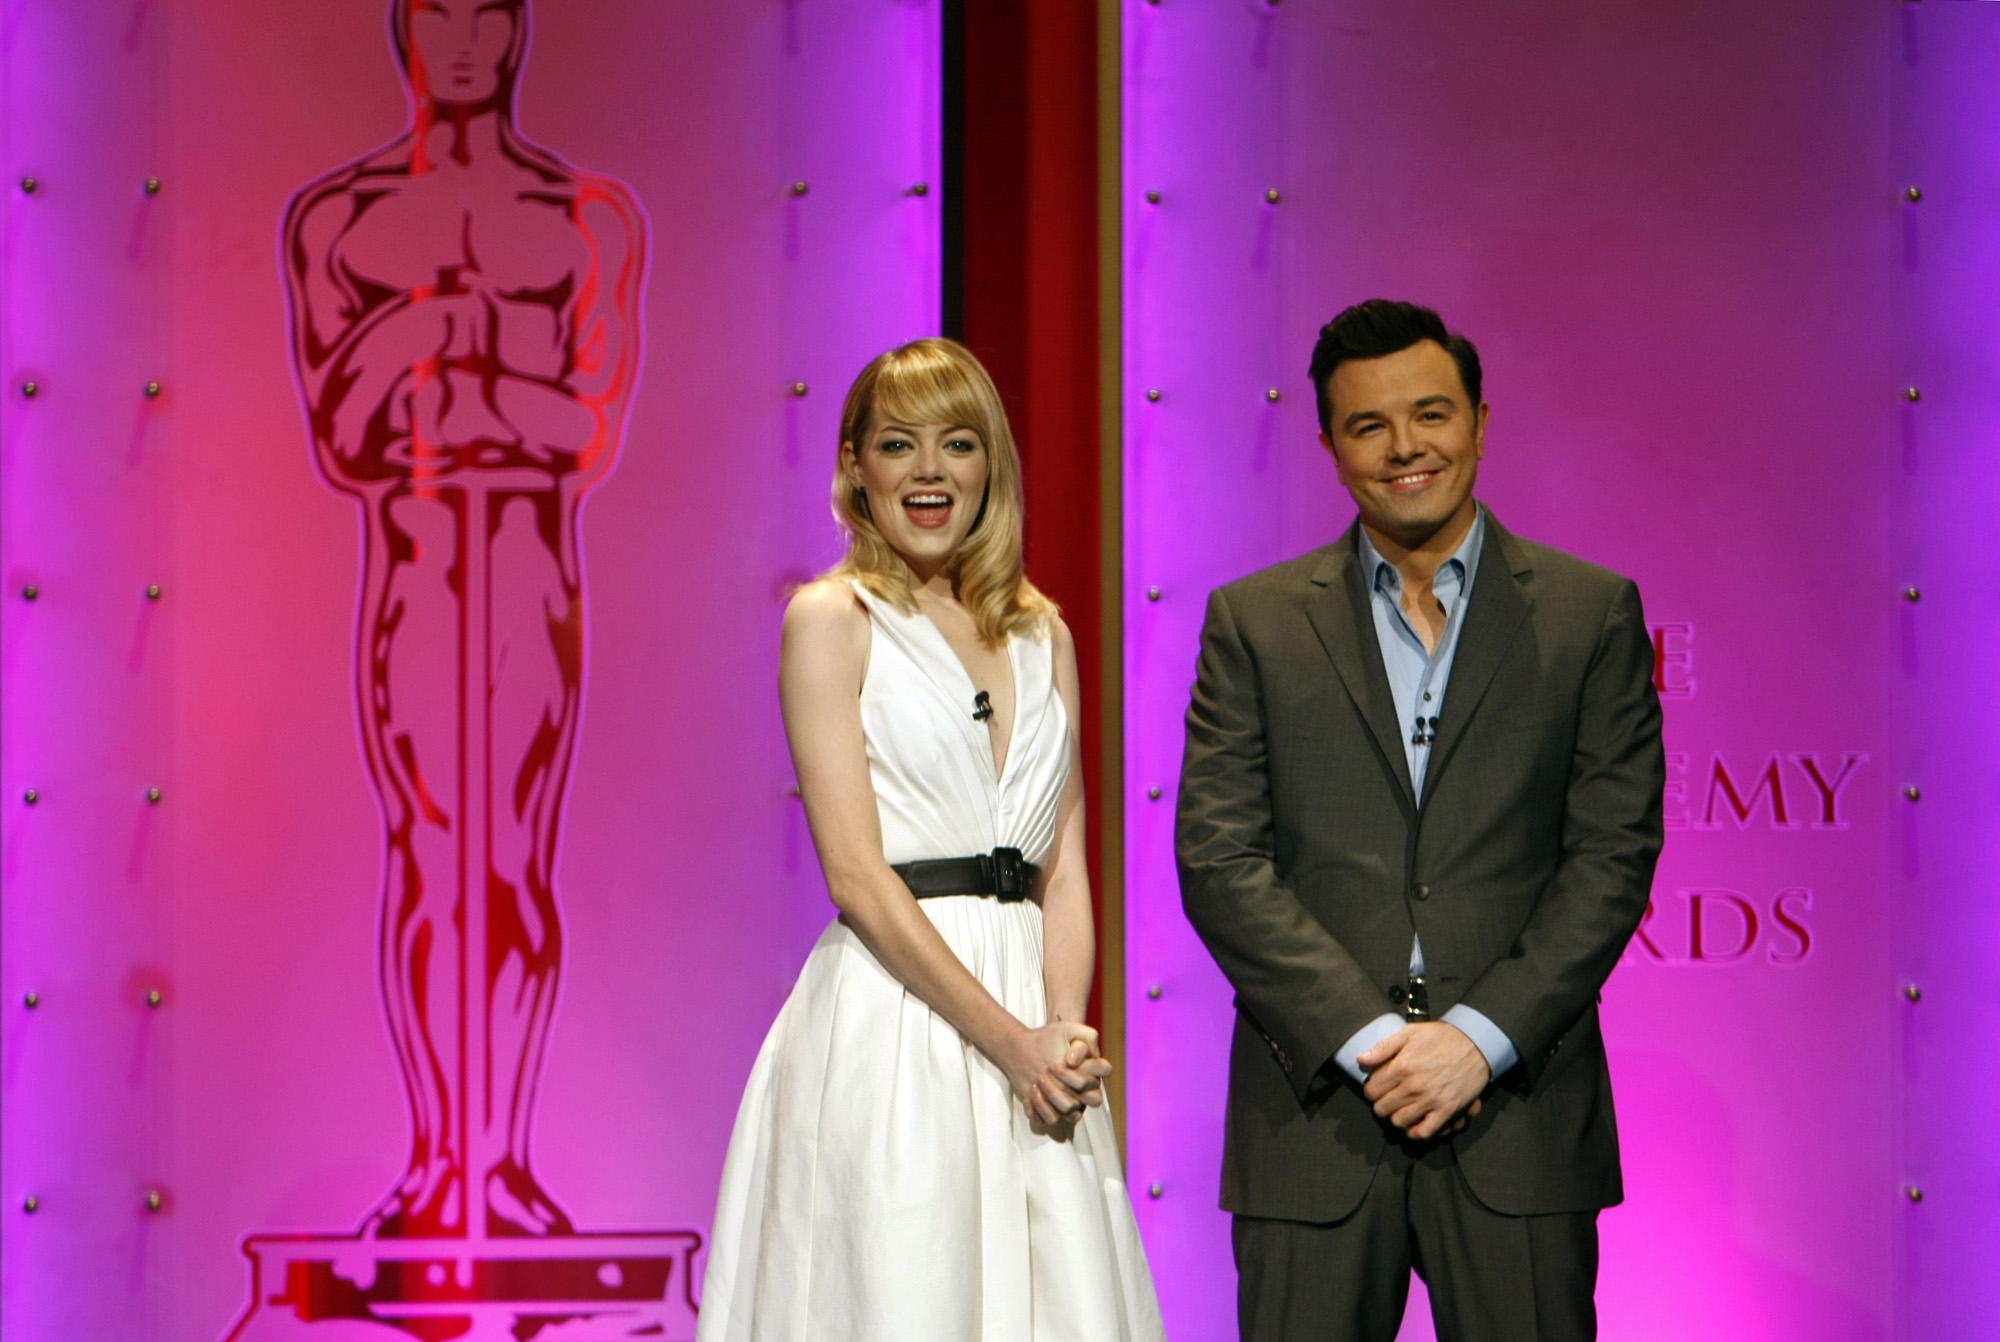 Seth MacFarlane and actress Emma Stone announce the Academy Award nominations in Beverly Hills, CA on Jan. 10, 2013.